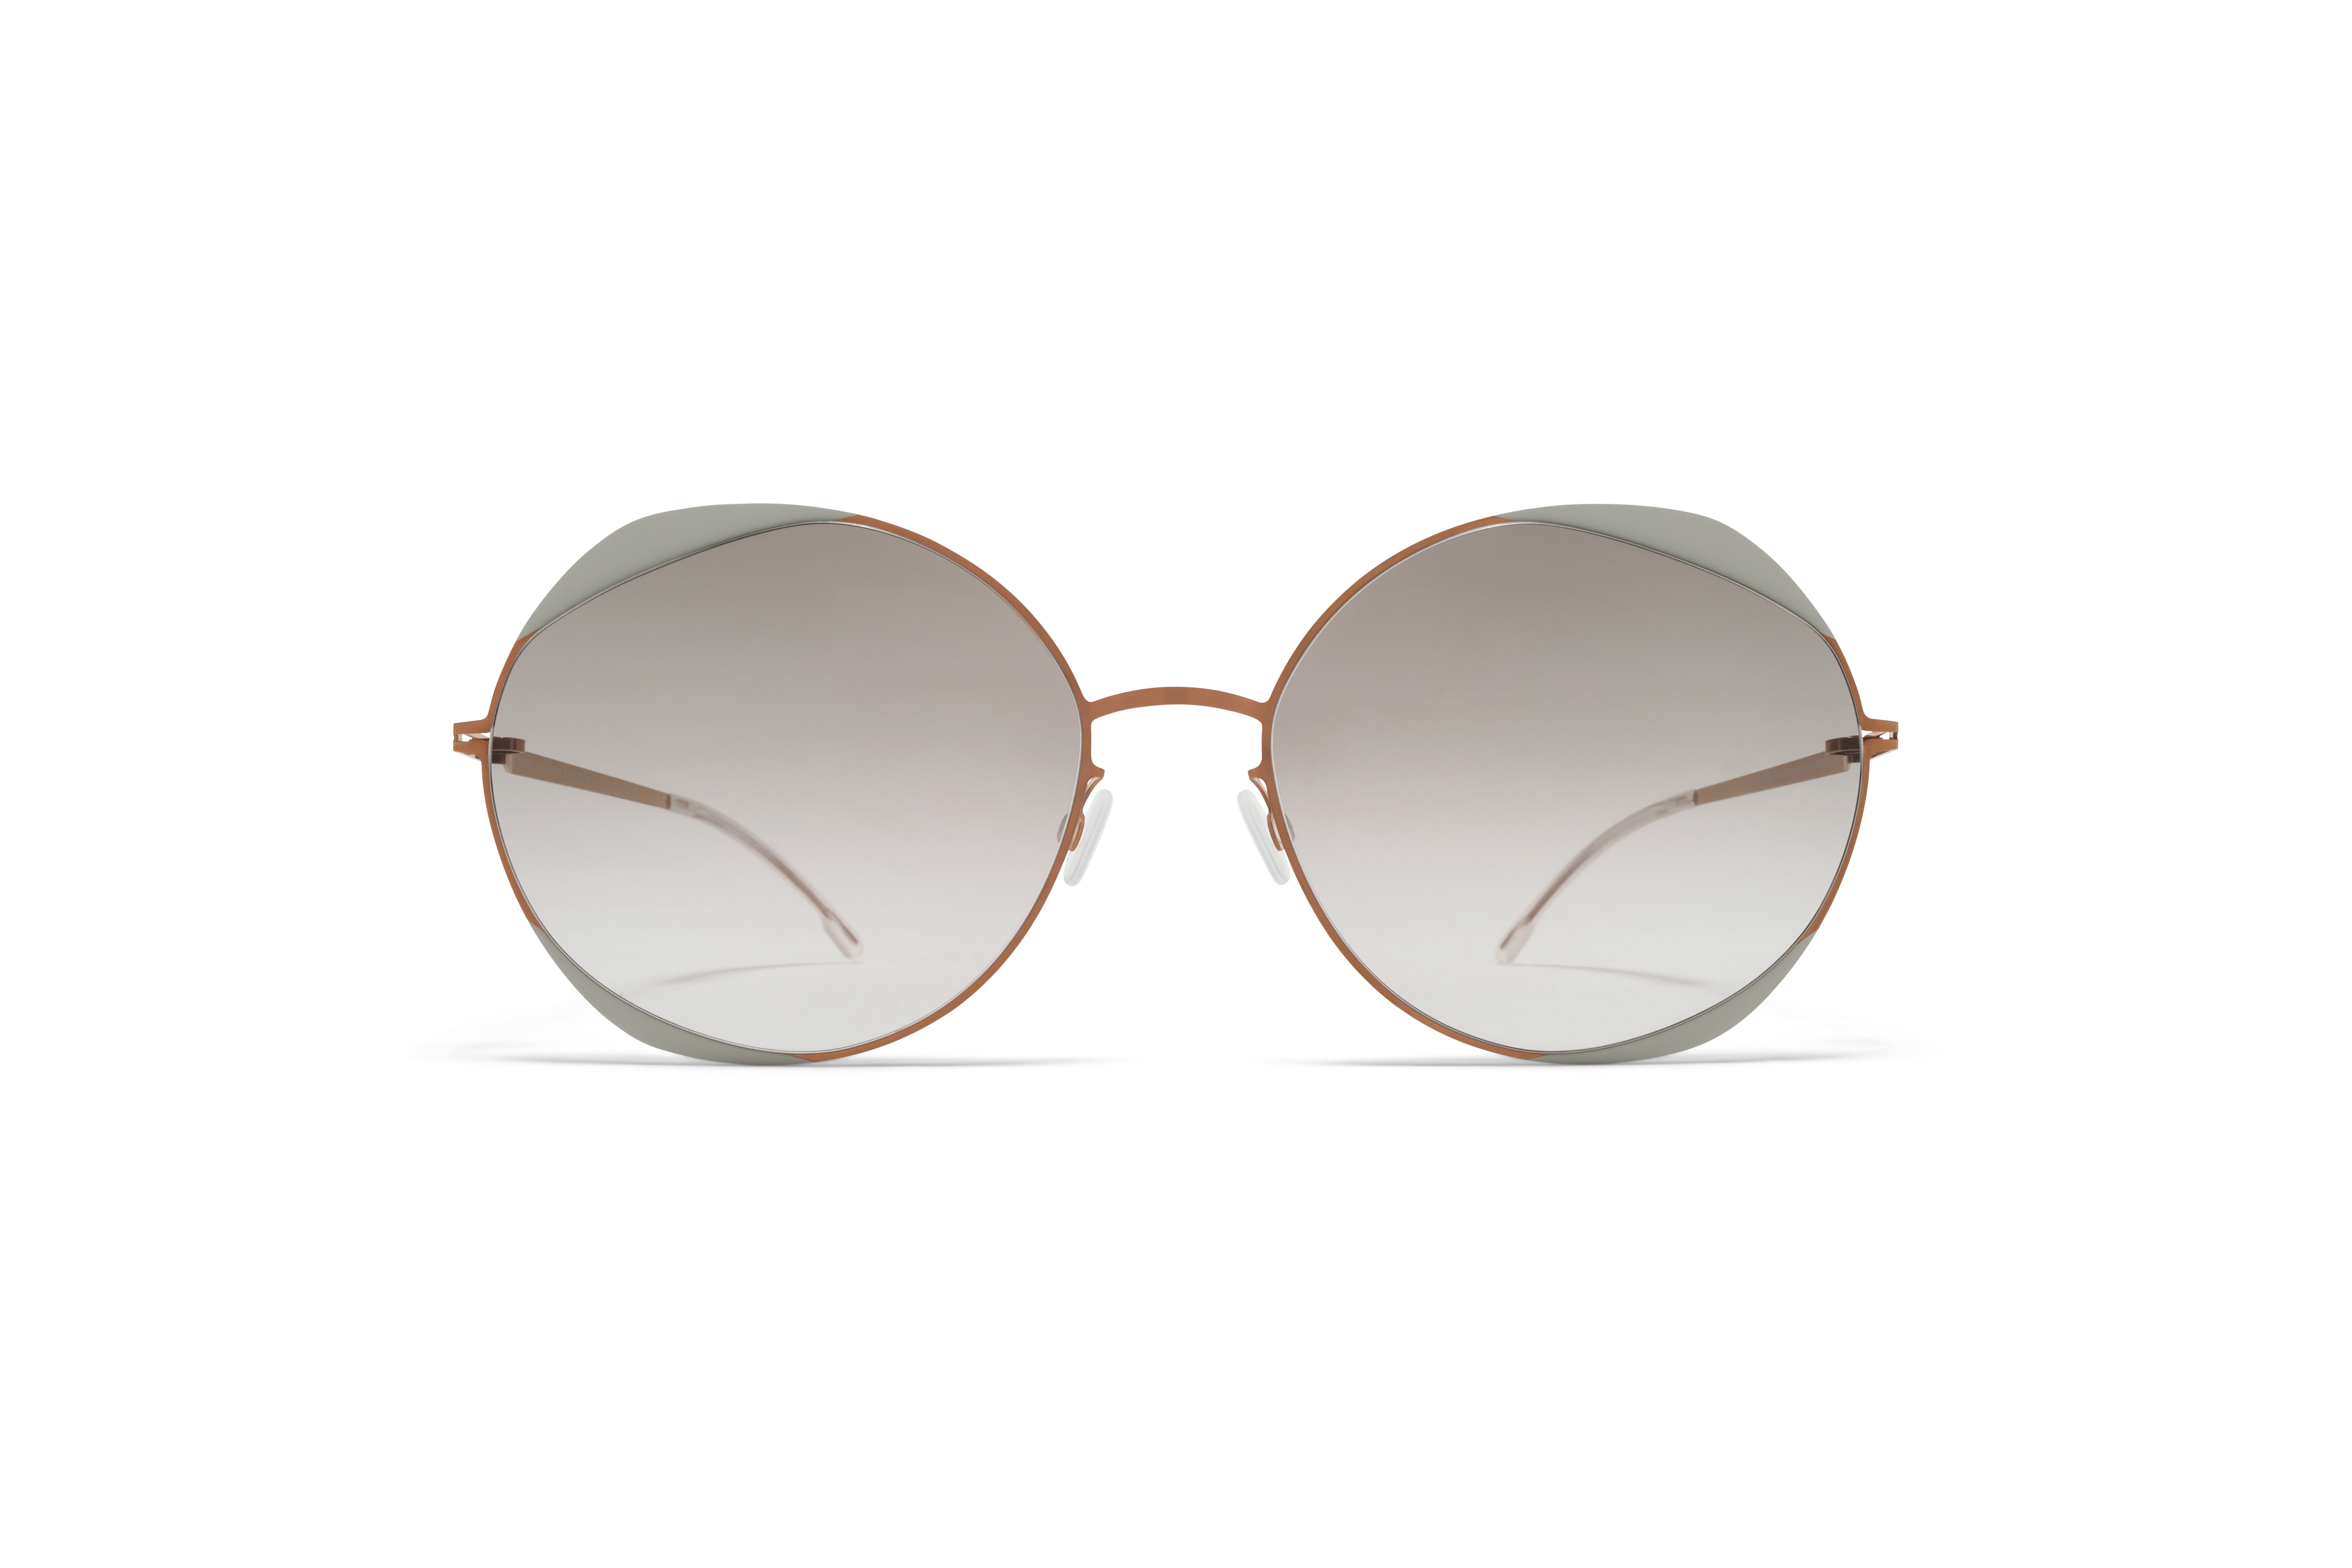 MYKITA Decades Sun Elisa Shiny Copper Stone Grey Original Grey Gradient